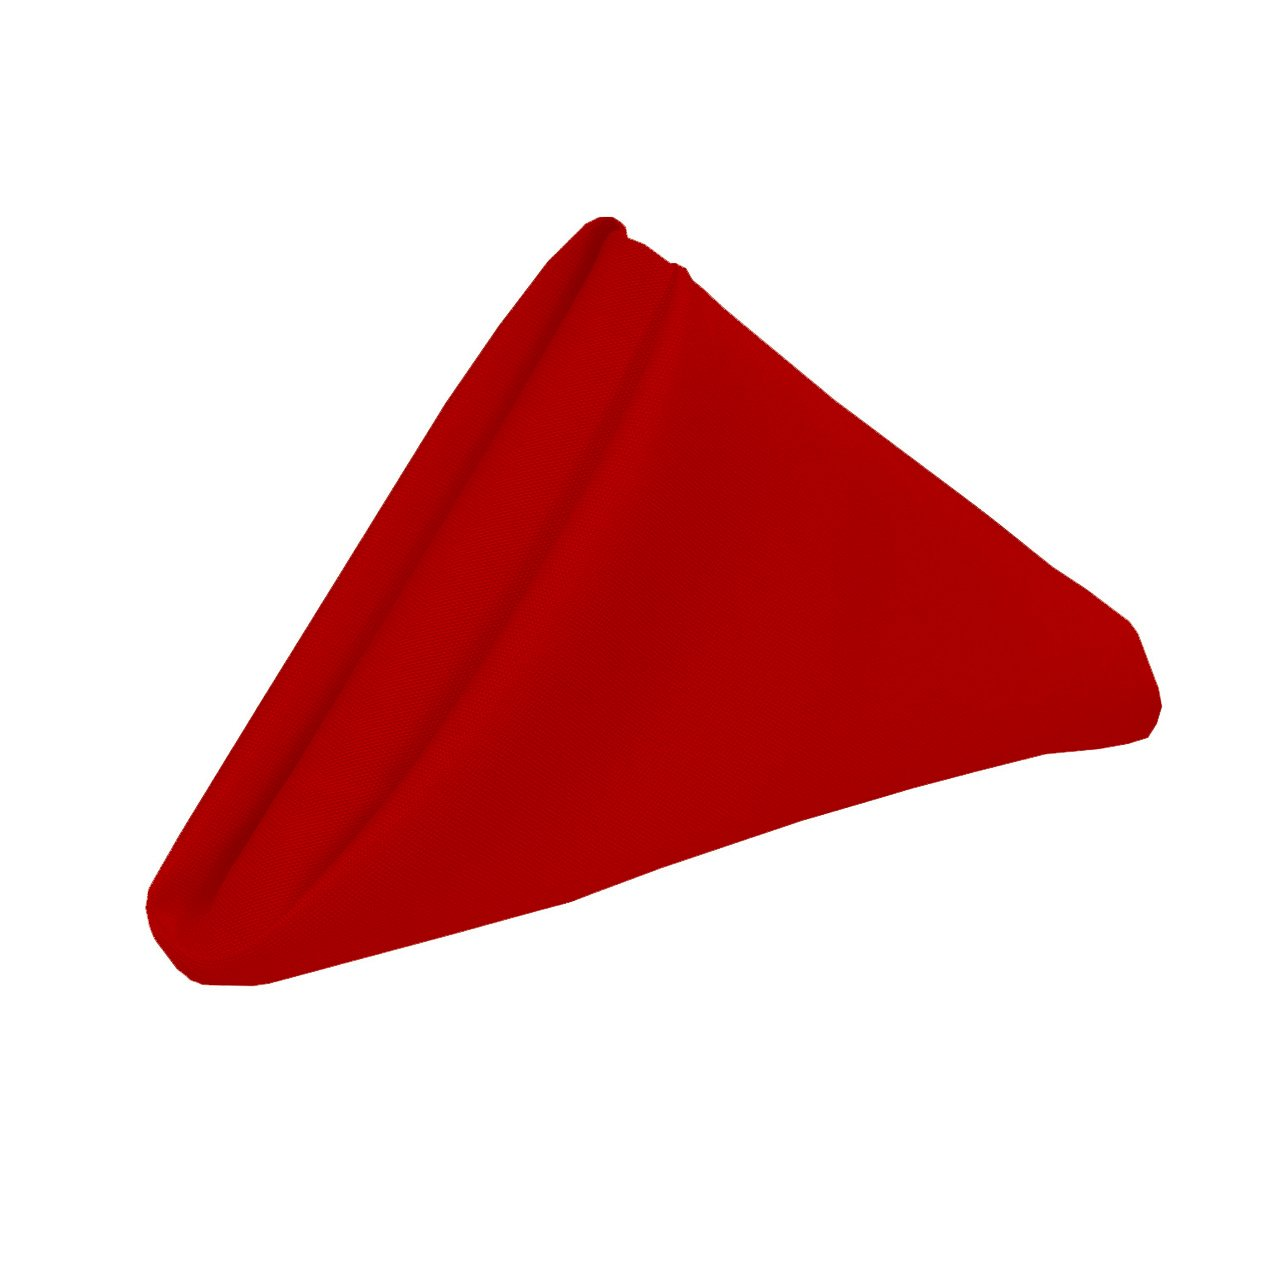 YCC Linen - 20 Inch Square Premium Polyester Cloth Napkins 10 Pack - Red, Oversized, Double Folded and Hemmed Table Napkins for Restaurant, Bistro, Wedding, Thanksgiving and Christmas